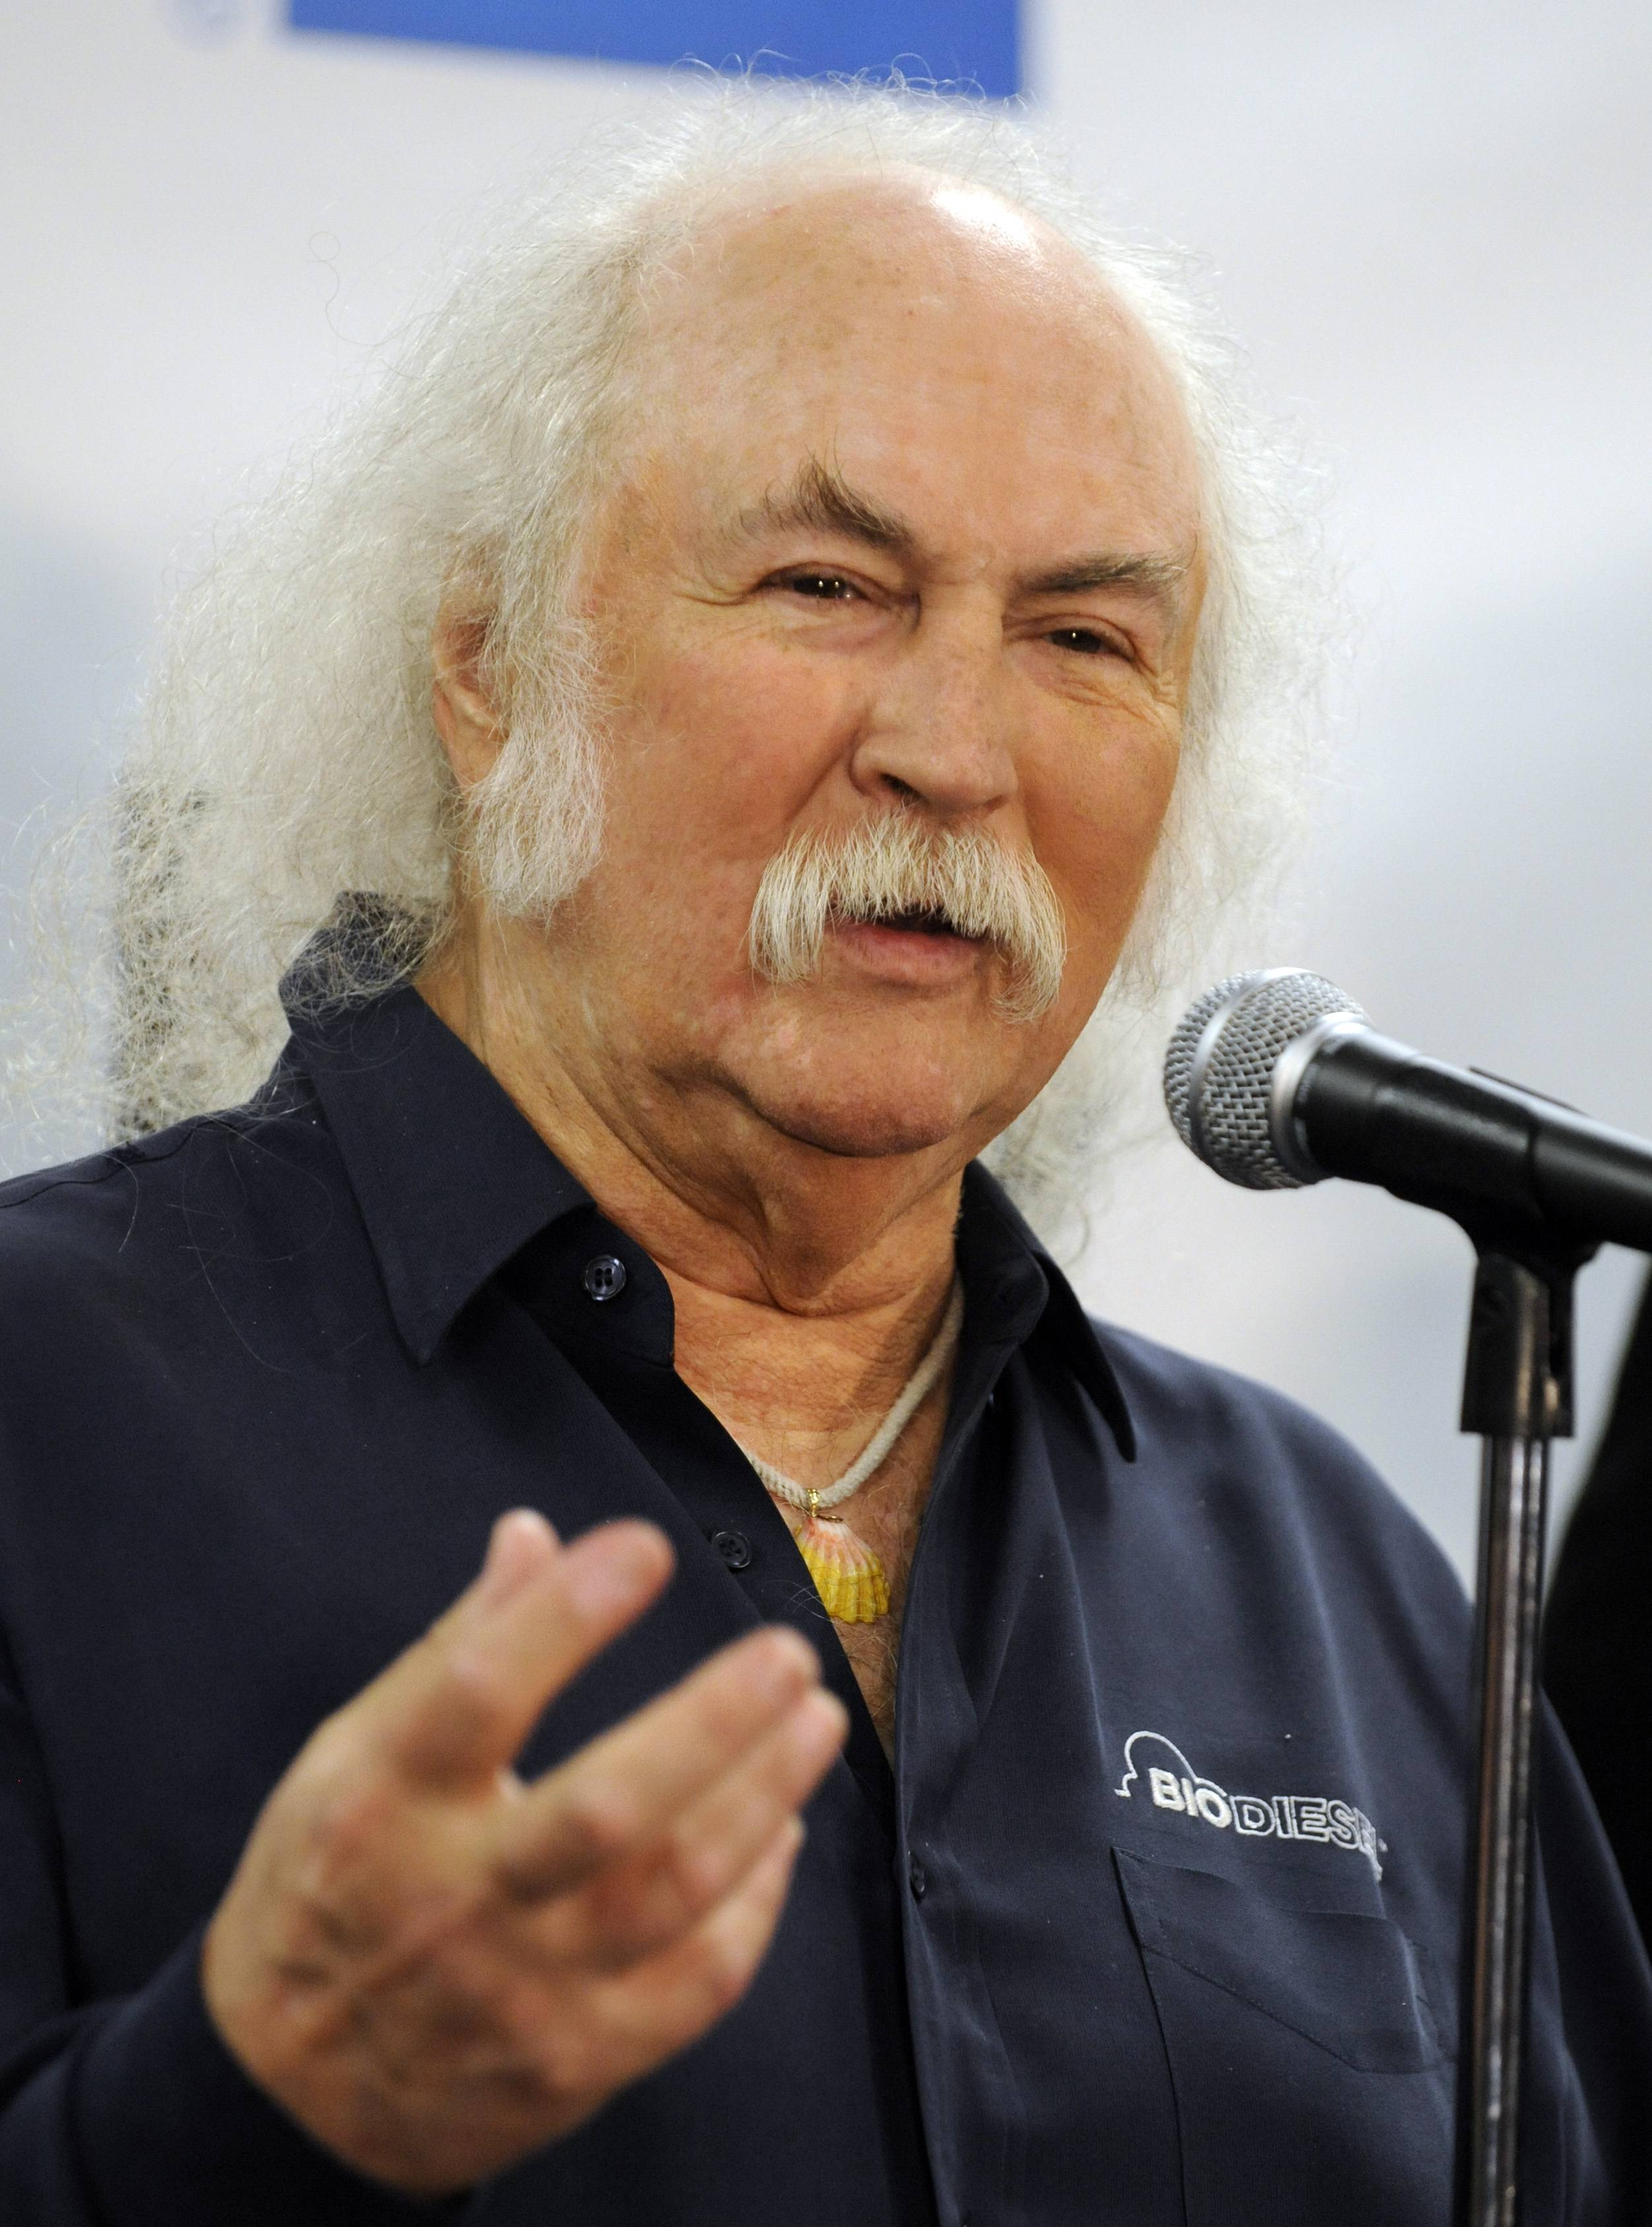 This Oct. 29, 2009 file photo shows, David Crosby in the press room at the 25th Anniversary Rock & Roll Hall of Fame concert at Madison Square Garden in New York. Crosby has undergone heart surgery and he's postponing sold-out California shows. Publicist Michael Jensen tells City News Service on Monday that the 72-year-old Crosby had a cardiac catheterization last week to fix a blocked coronary artery.